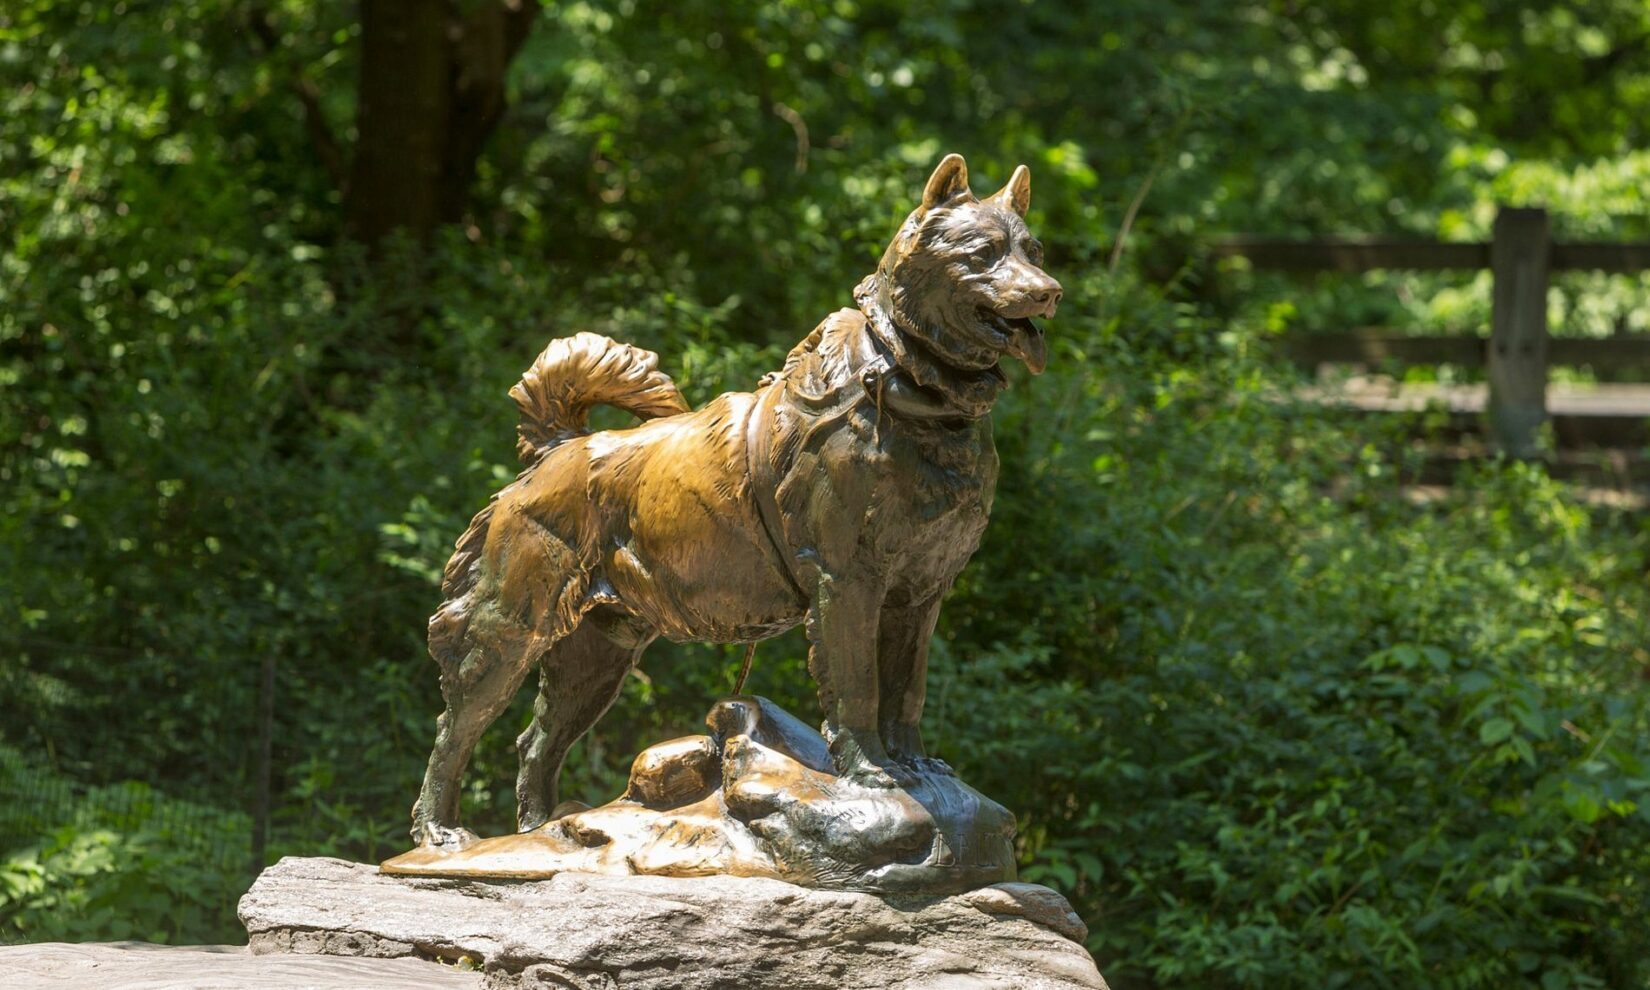 The statue of Balto stands alert atop a schist outcropping.